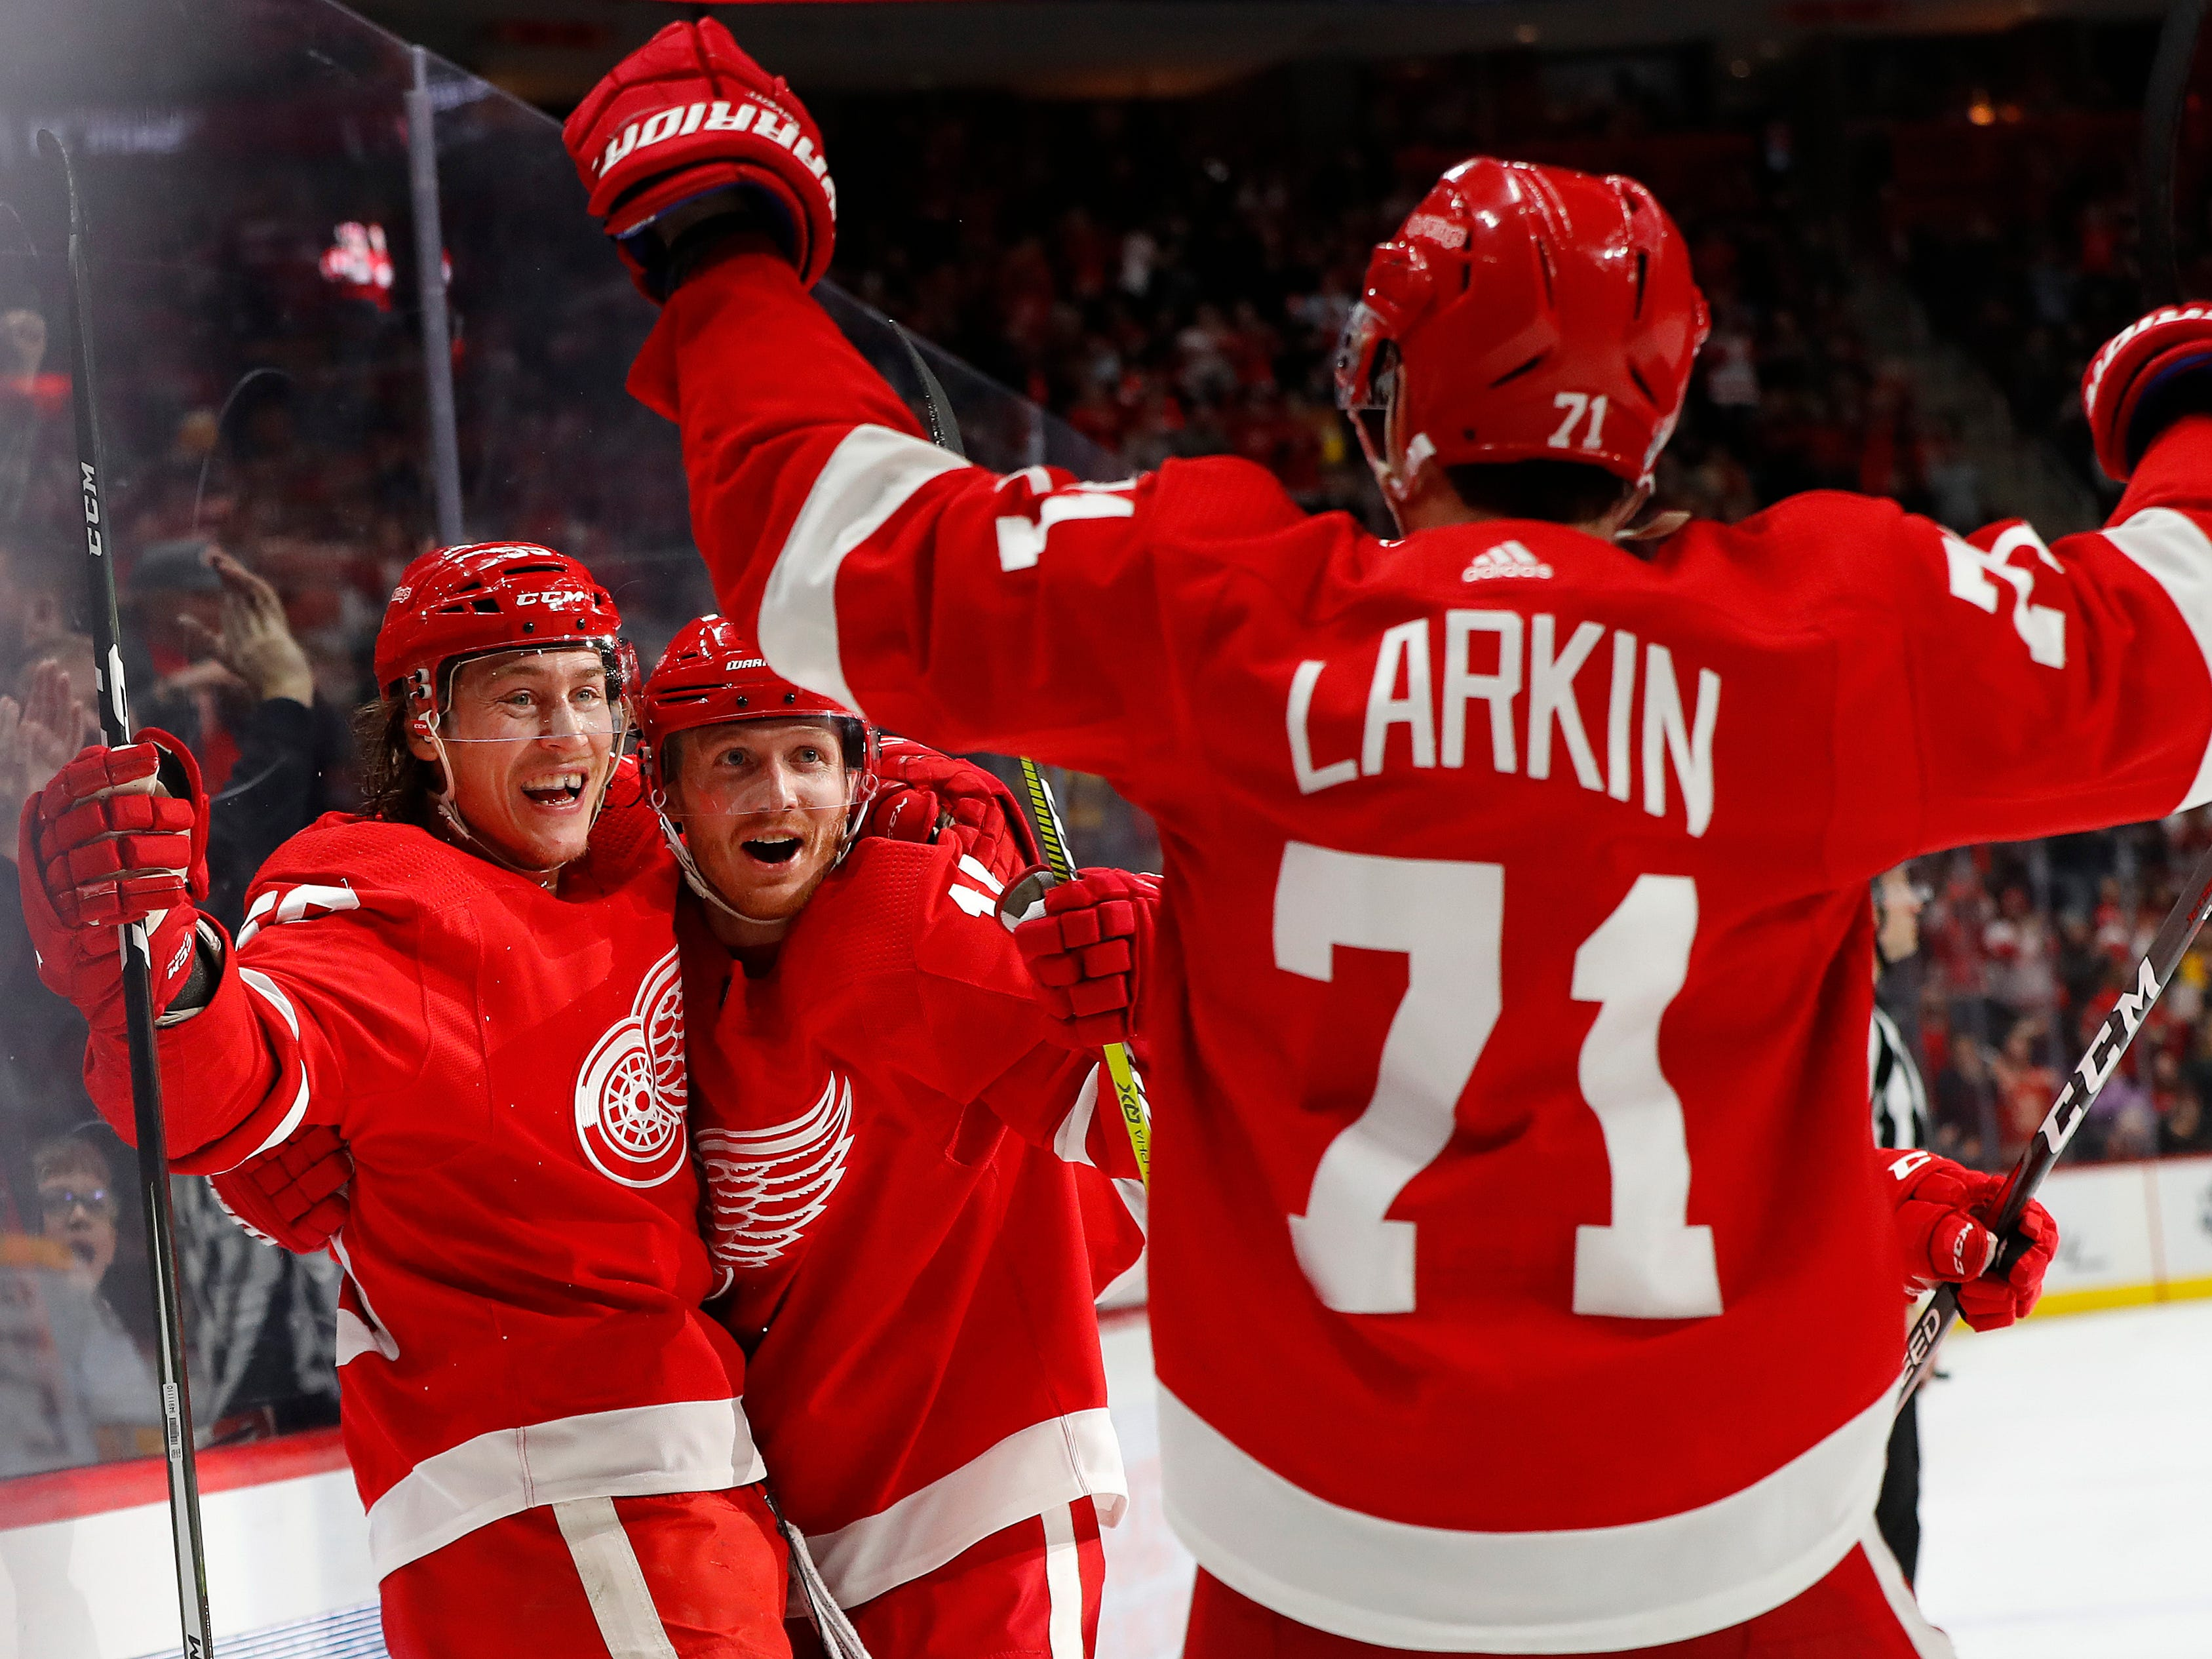 Detroit Red Wings' Tyler Bertuzzi, left, celebrates his goal against the Nashville Predators with Gustav Nyquist, center, and Dylan Larkin (71) in the third period.